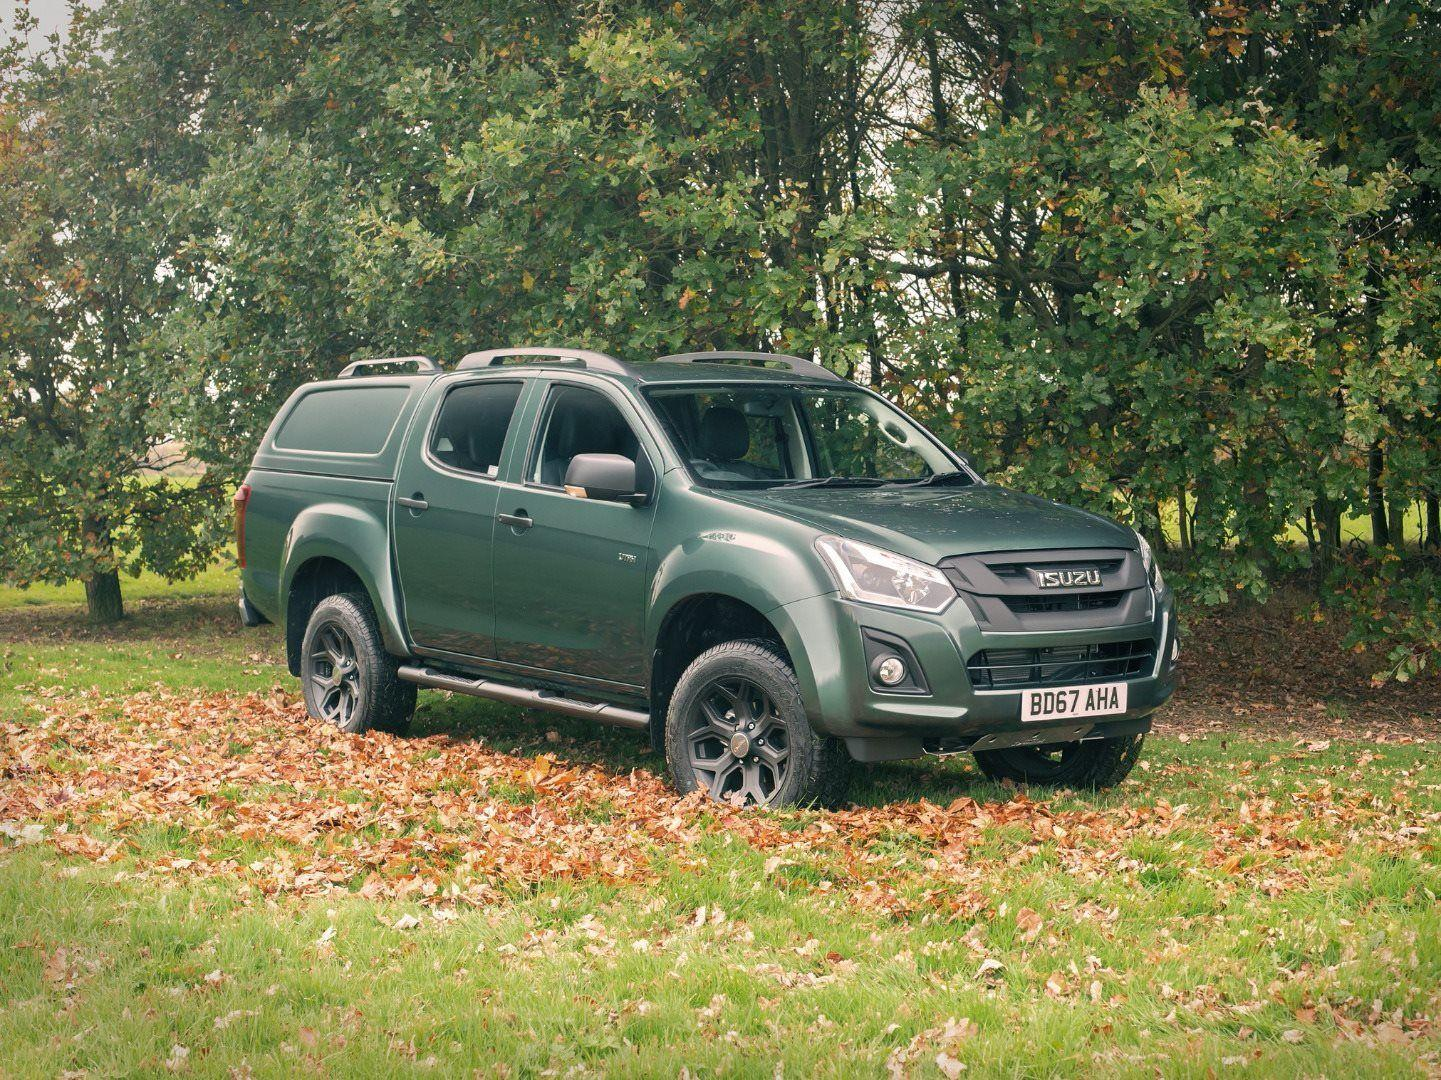 INTRODUCING THE NEW GENERATION ISUZU D-MAX HUNTSMAN